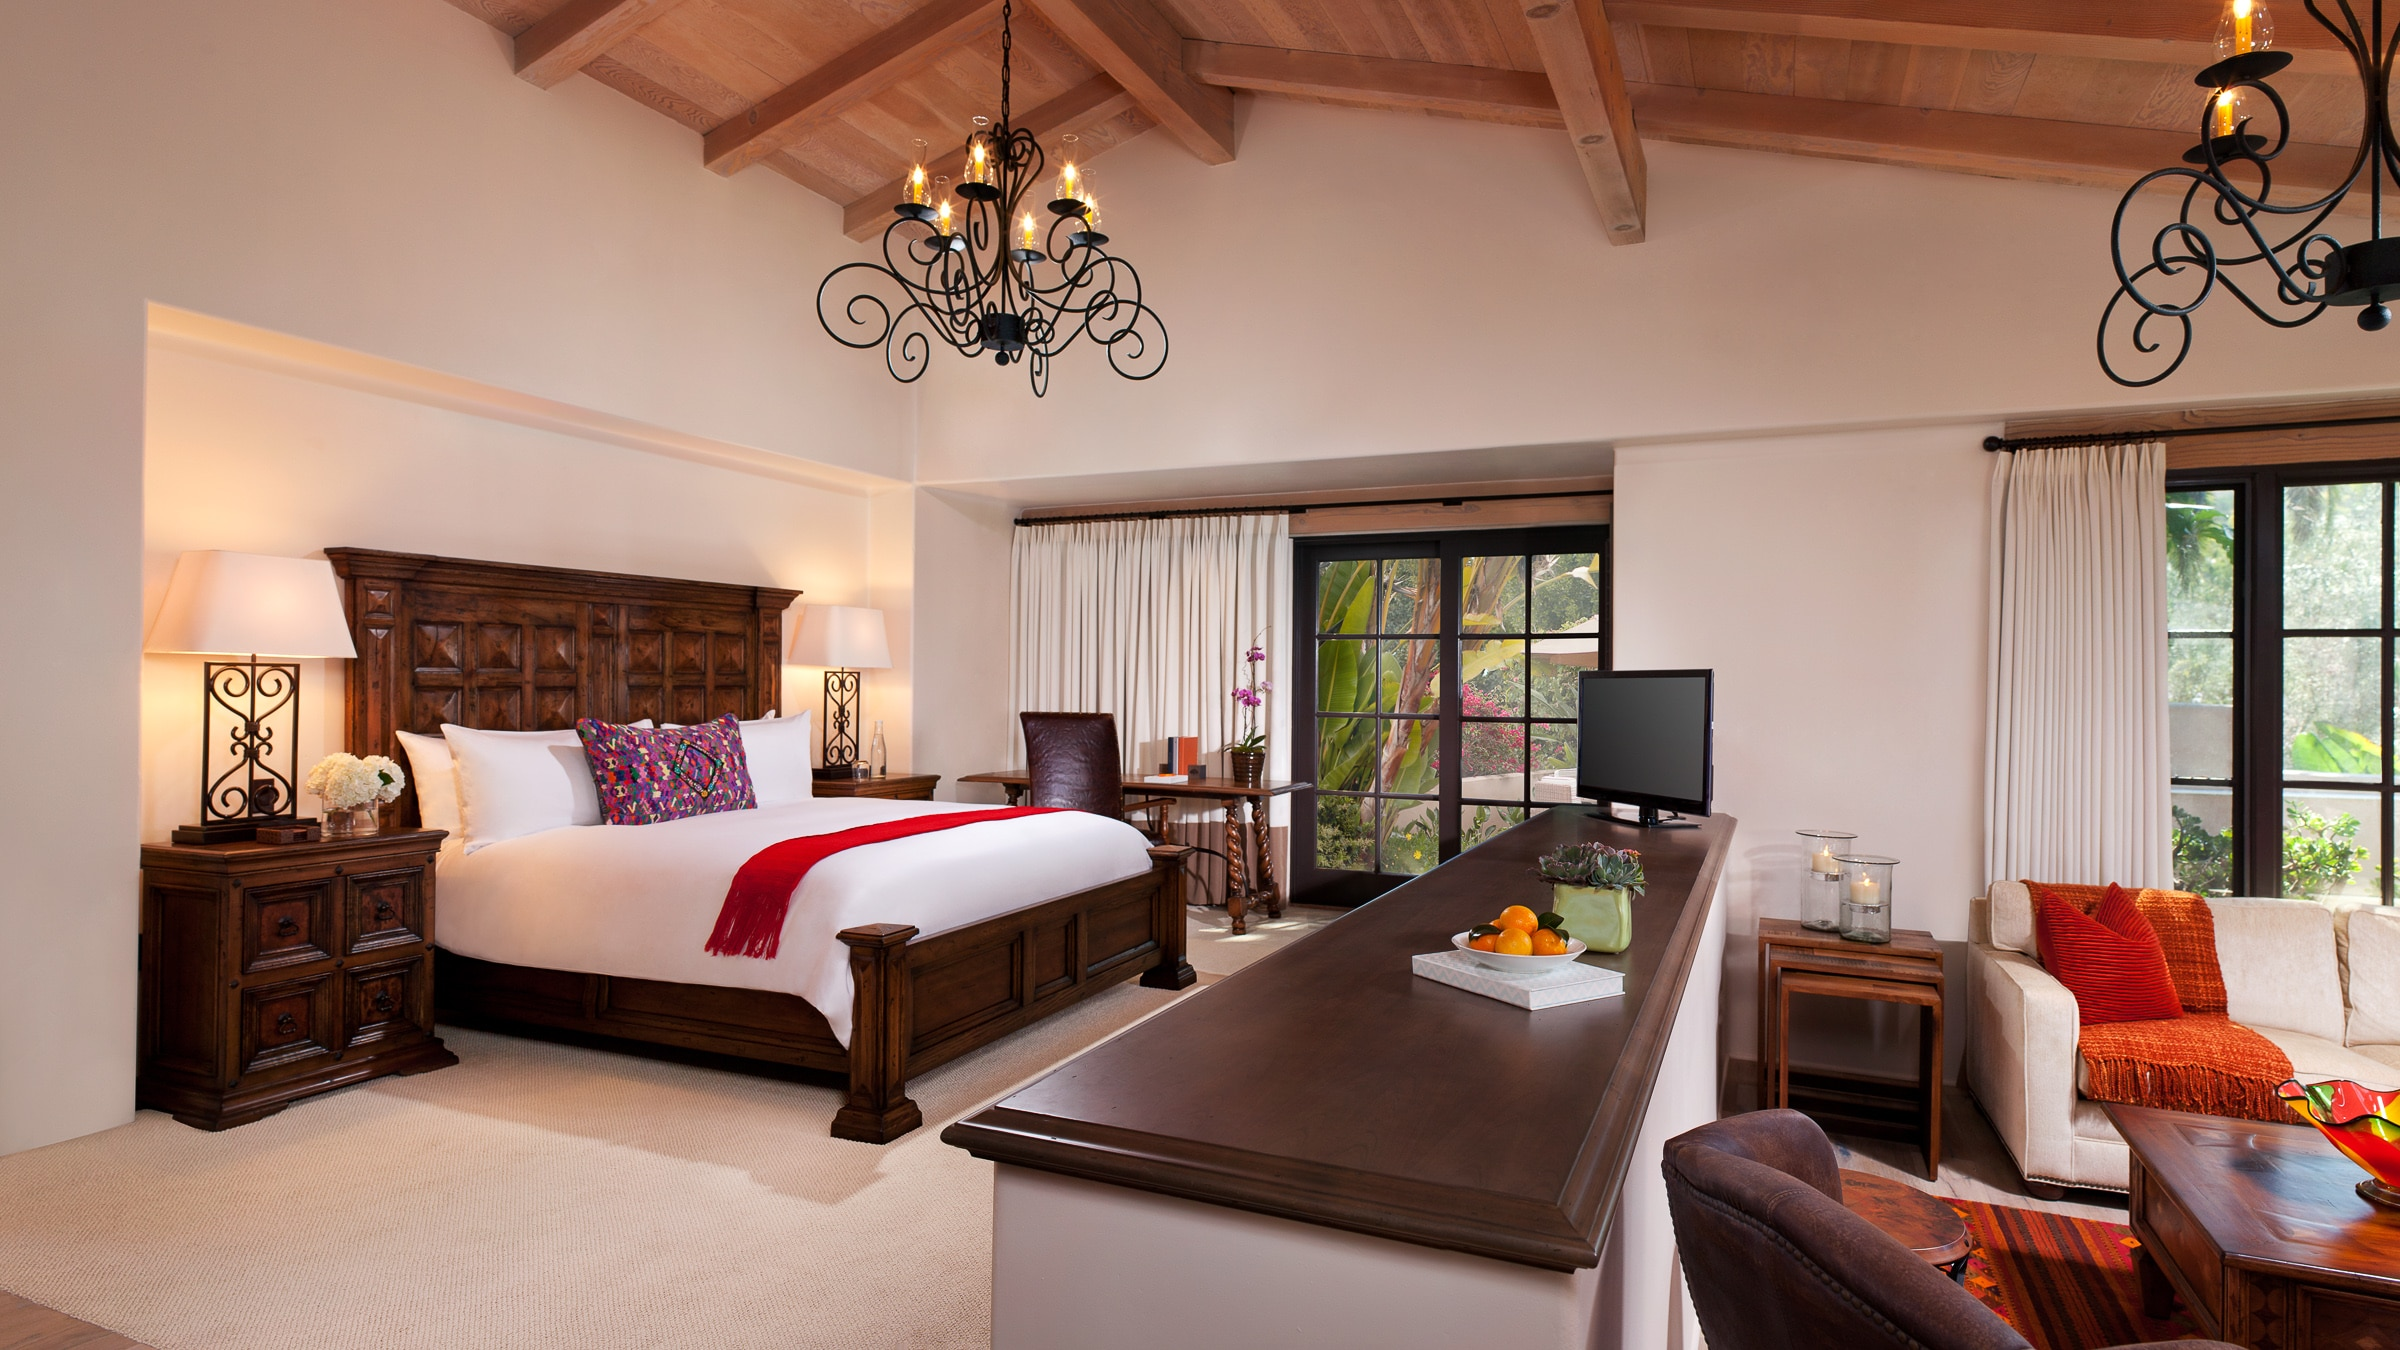 Olive Grove Suite bedroom with vaulted ceiling at Rancho Valencia, a popular San Diego family resort.